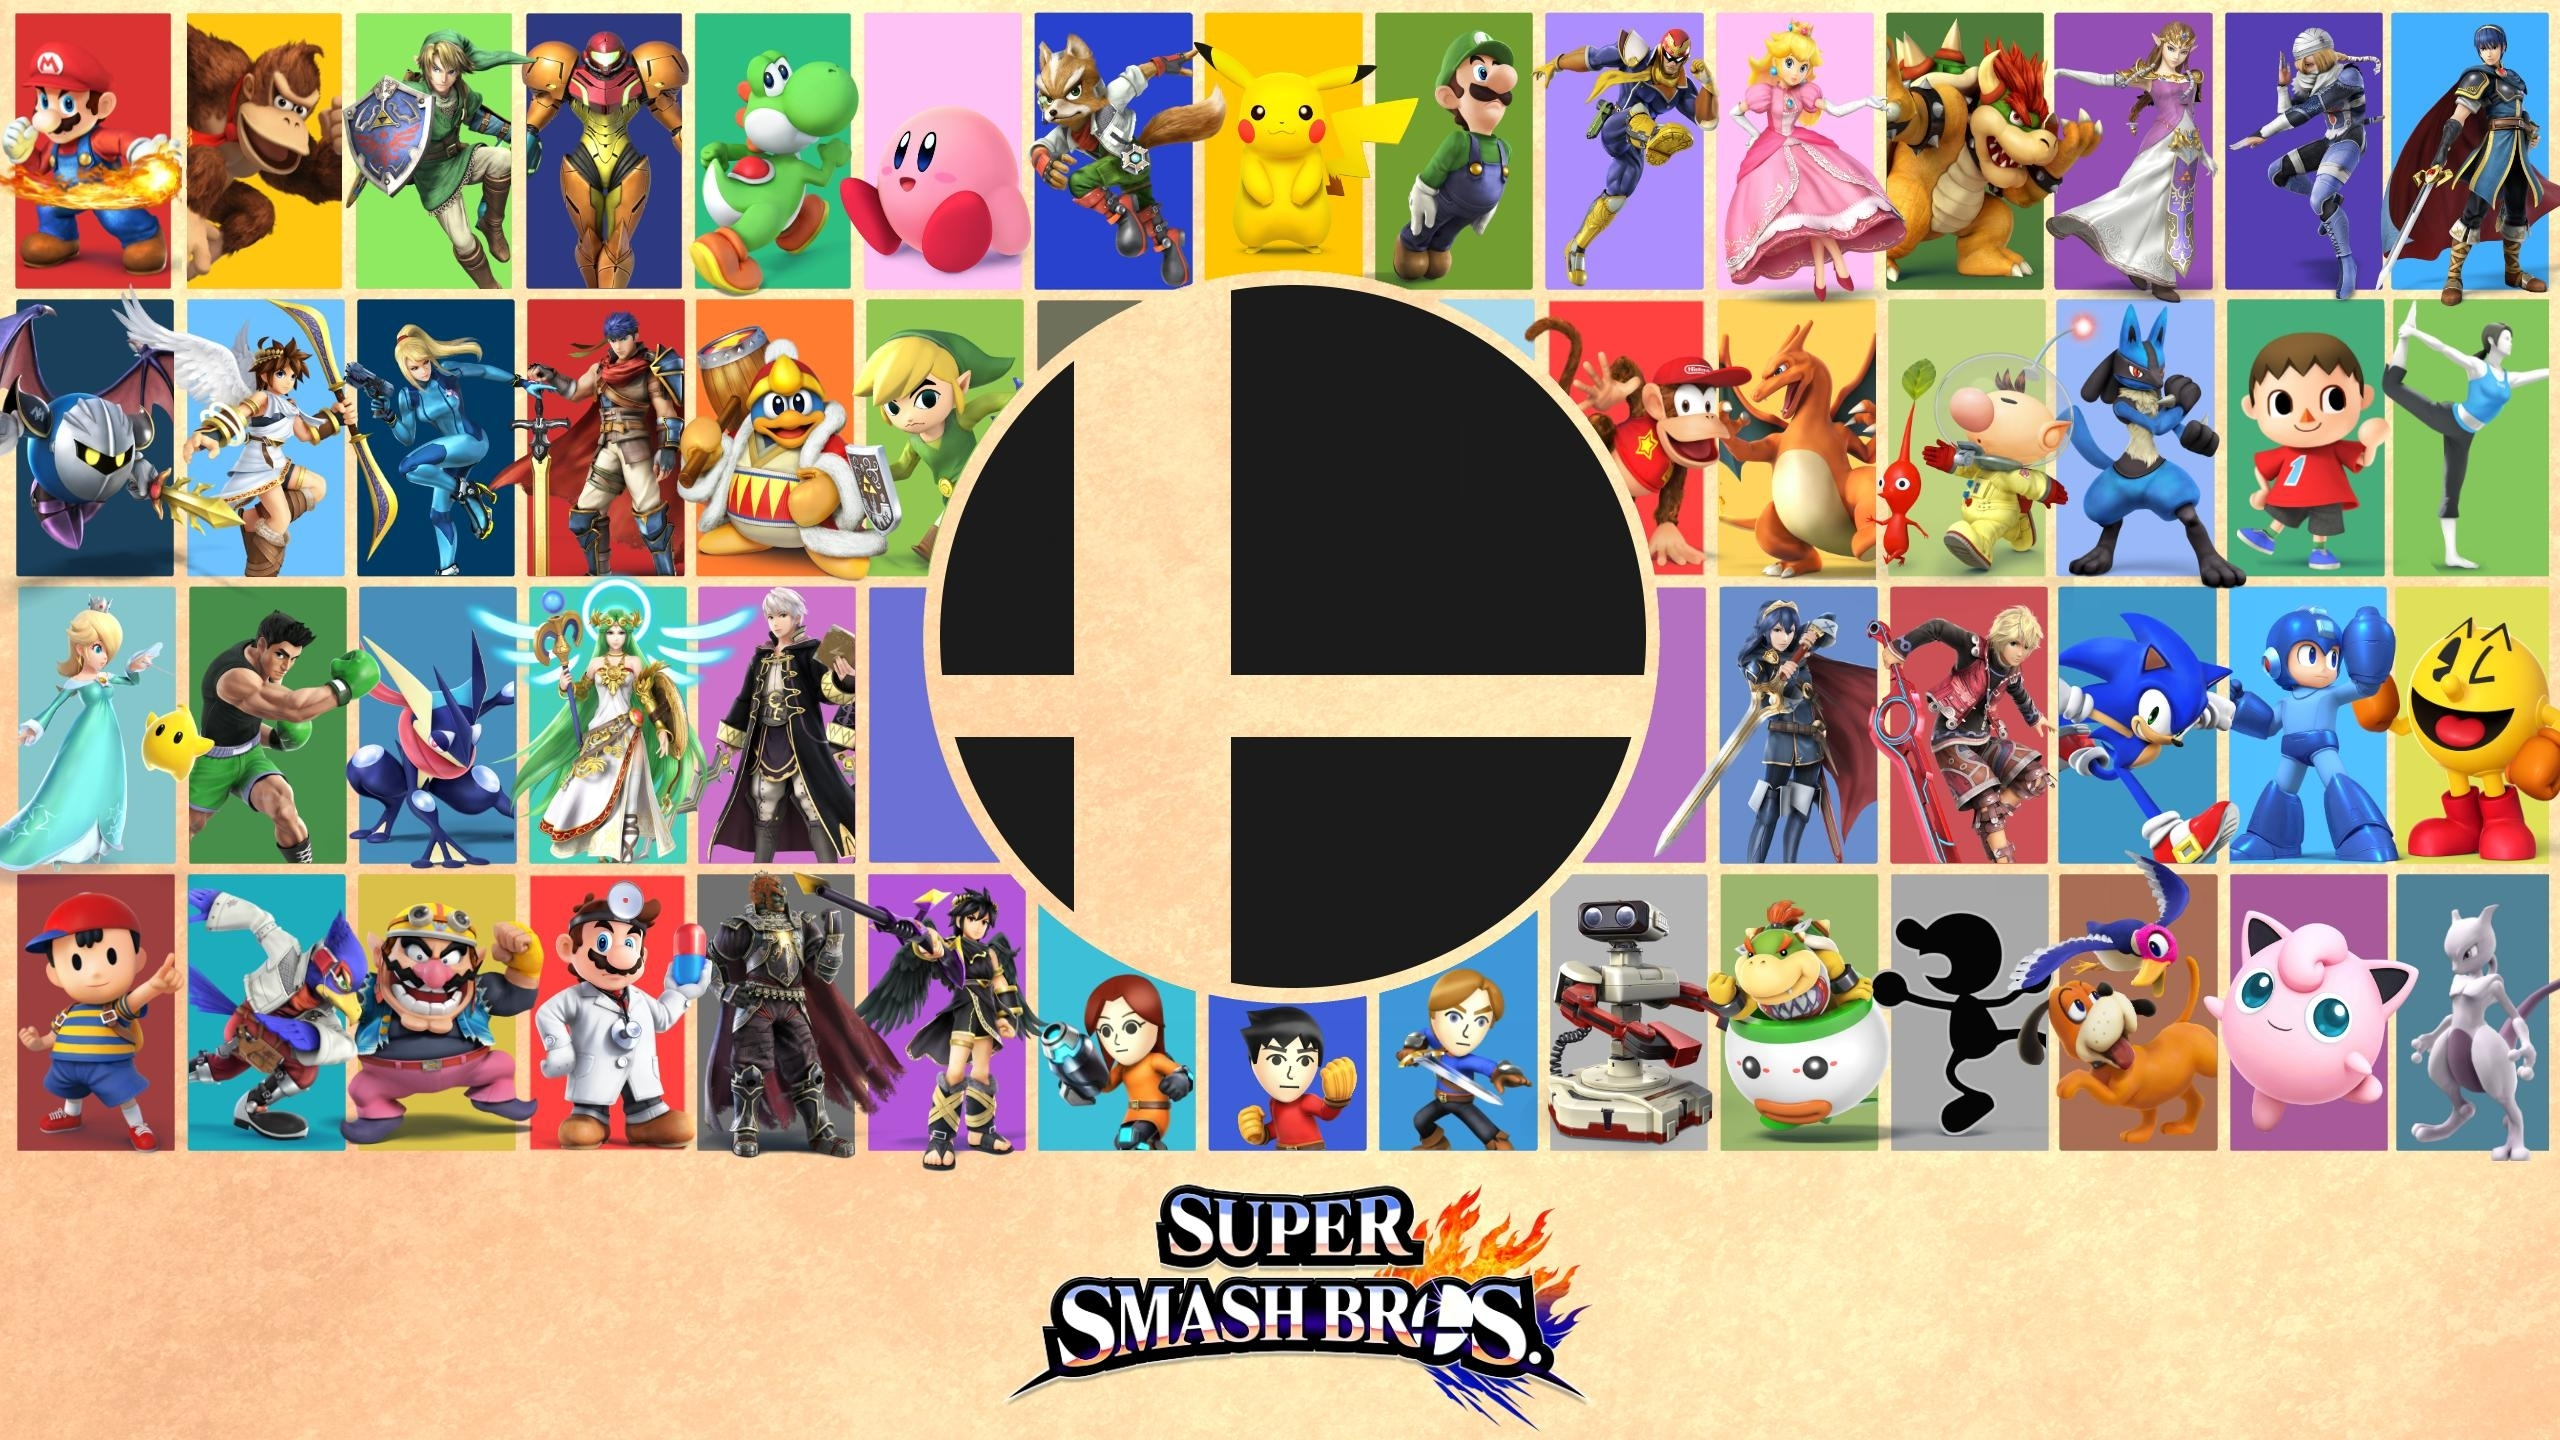 made a super smash bros wallpaper/poster today, thought you guys